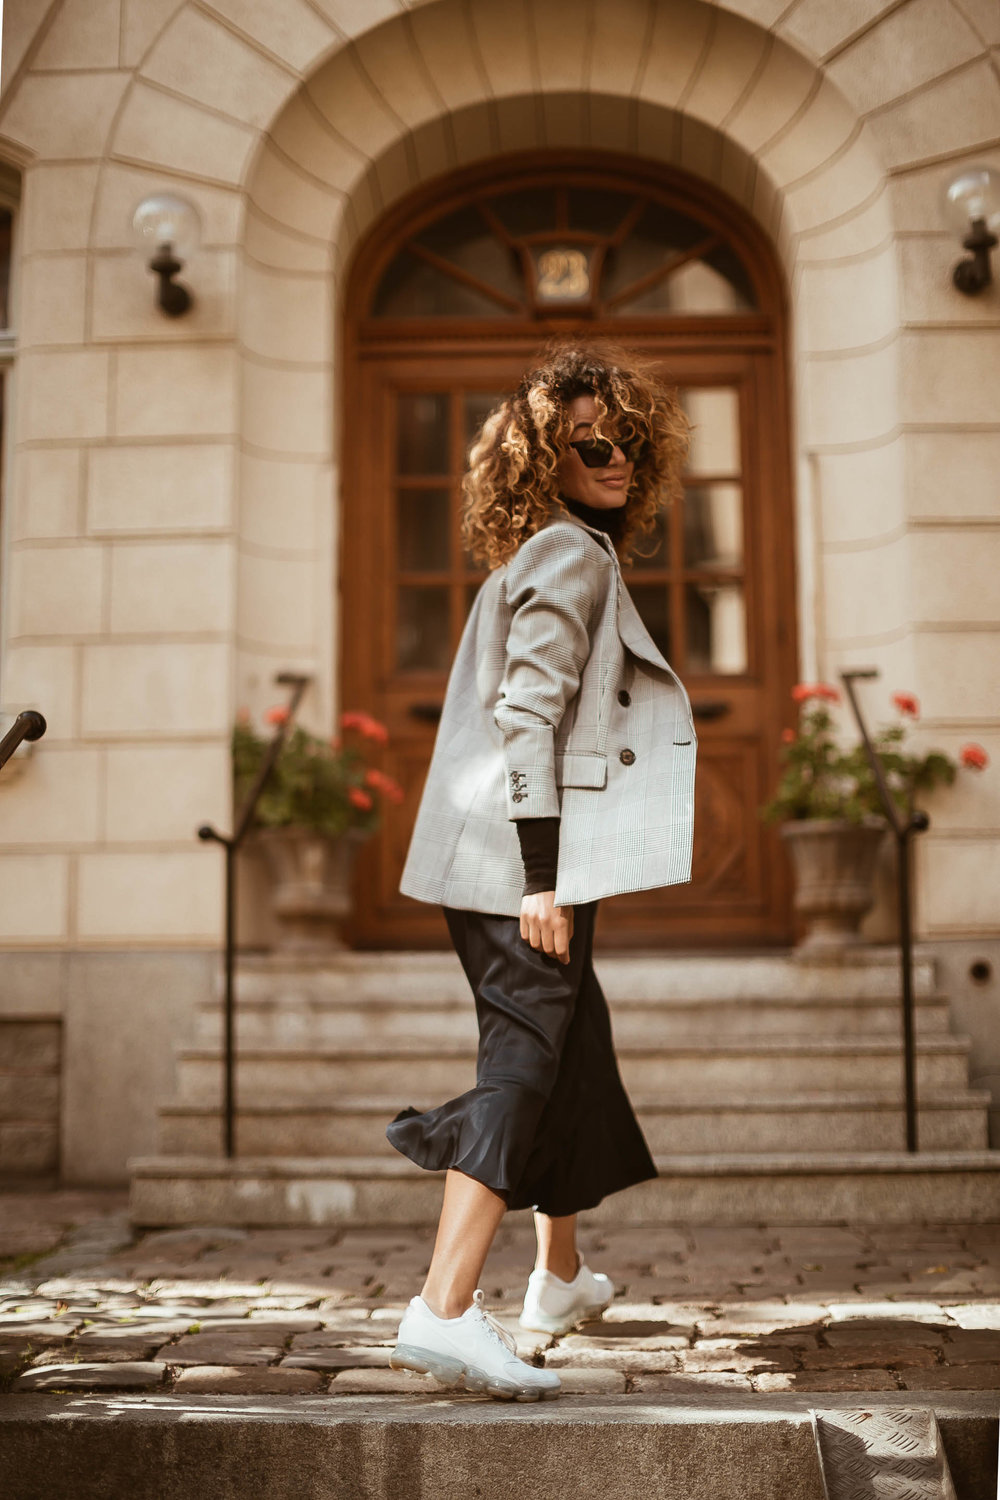 atelier-the-che-sara-how-fashion-and-beauty-can-improve-your-mindset-and-spirituality